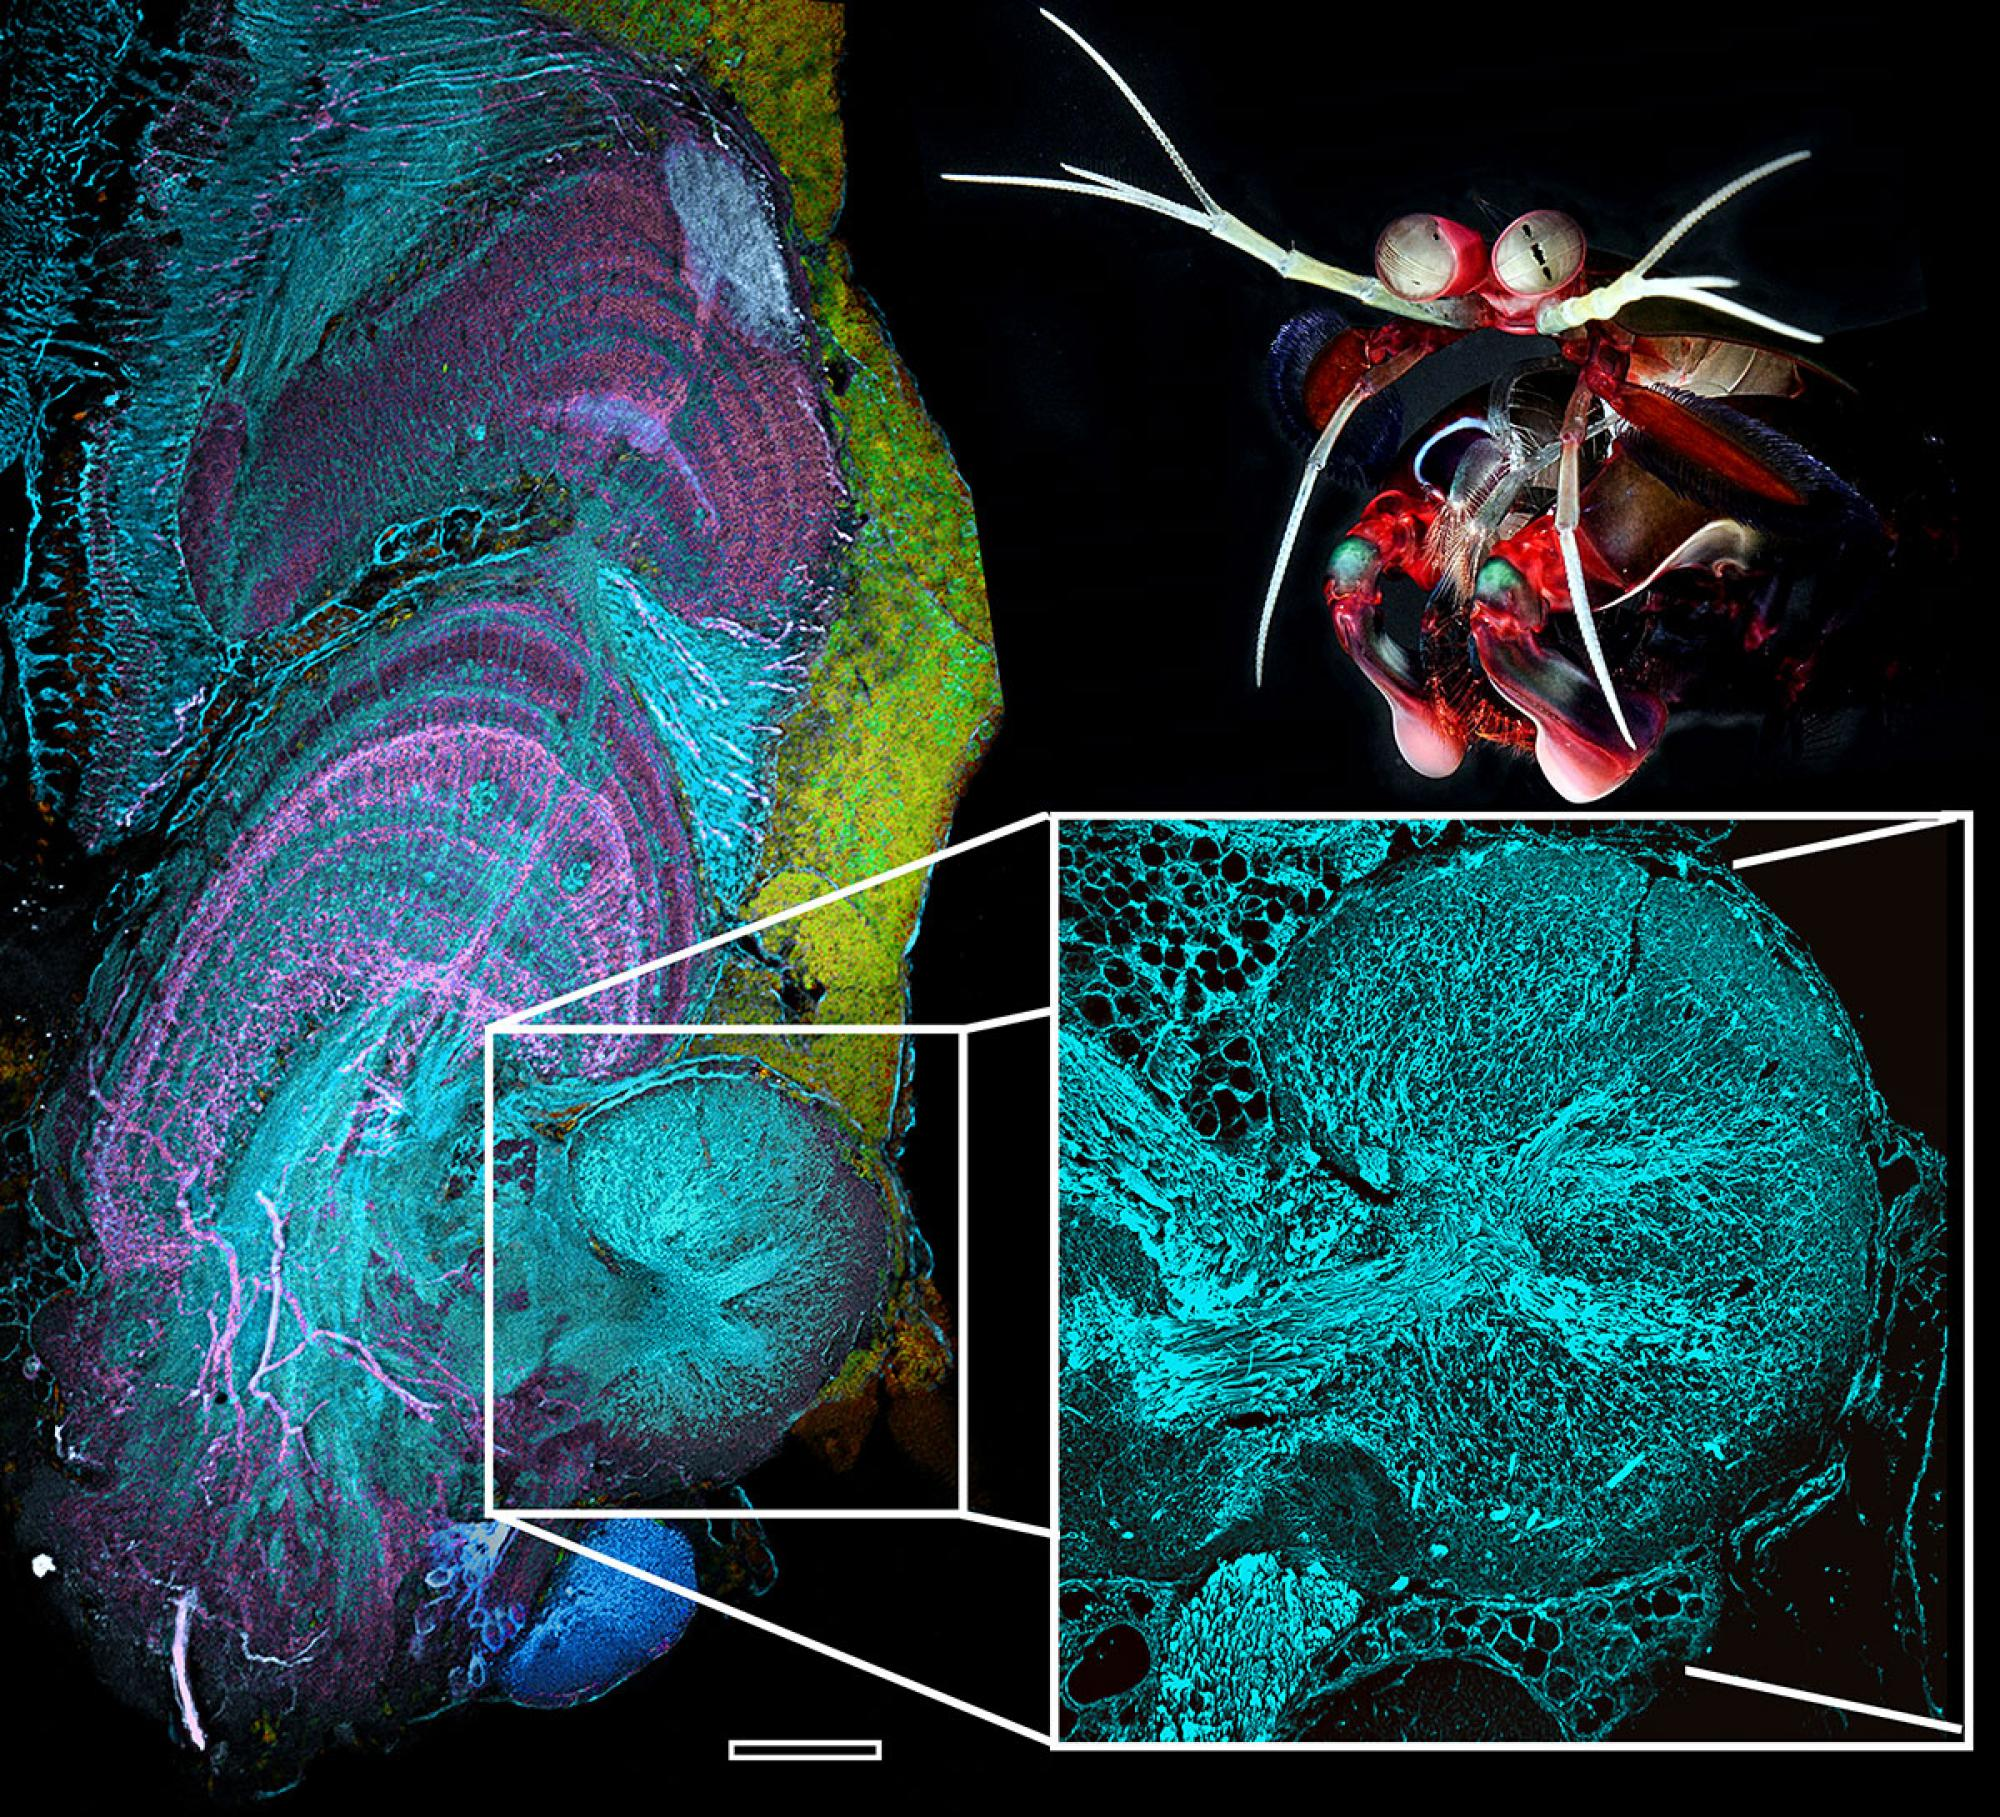 Researchers stained mantis shrimp brain specimens with antibodies to obtain highly detailed images showing various types of neuronal processes. The reniform body  is connected to the eye's visual  and learning and memory center .